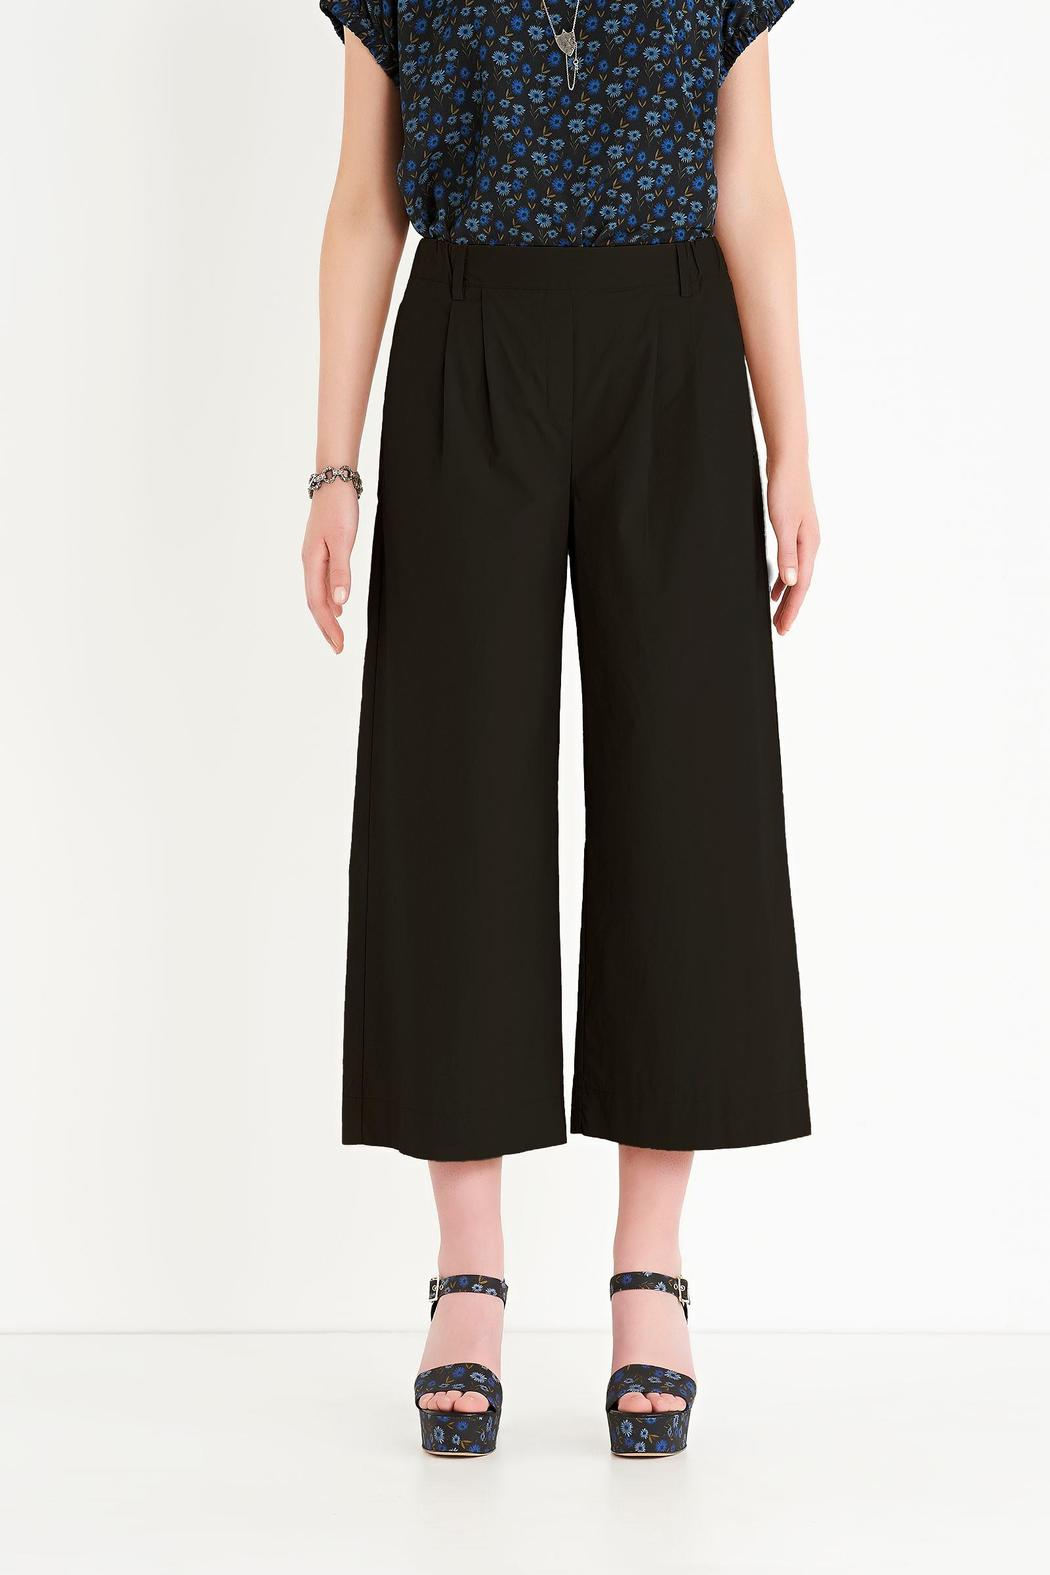 Ottod'ame Cropped Poplin Pant - Front Cropped Image